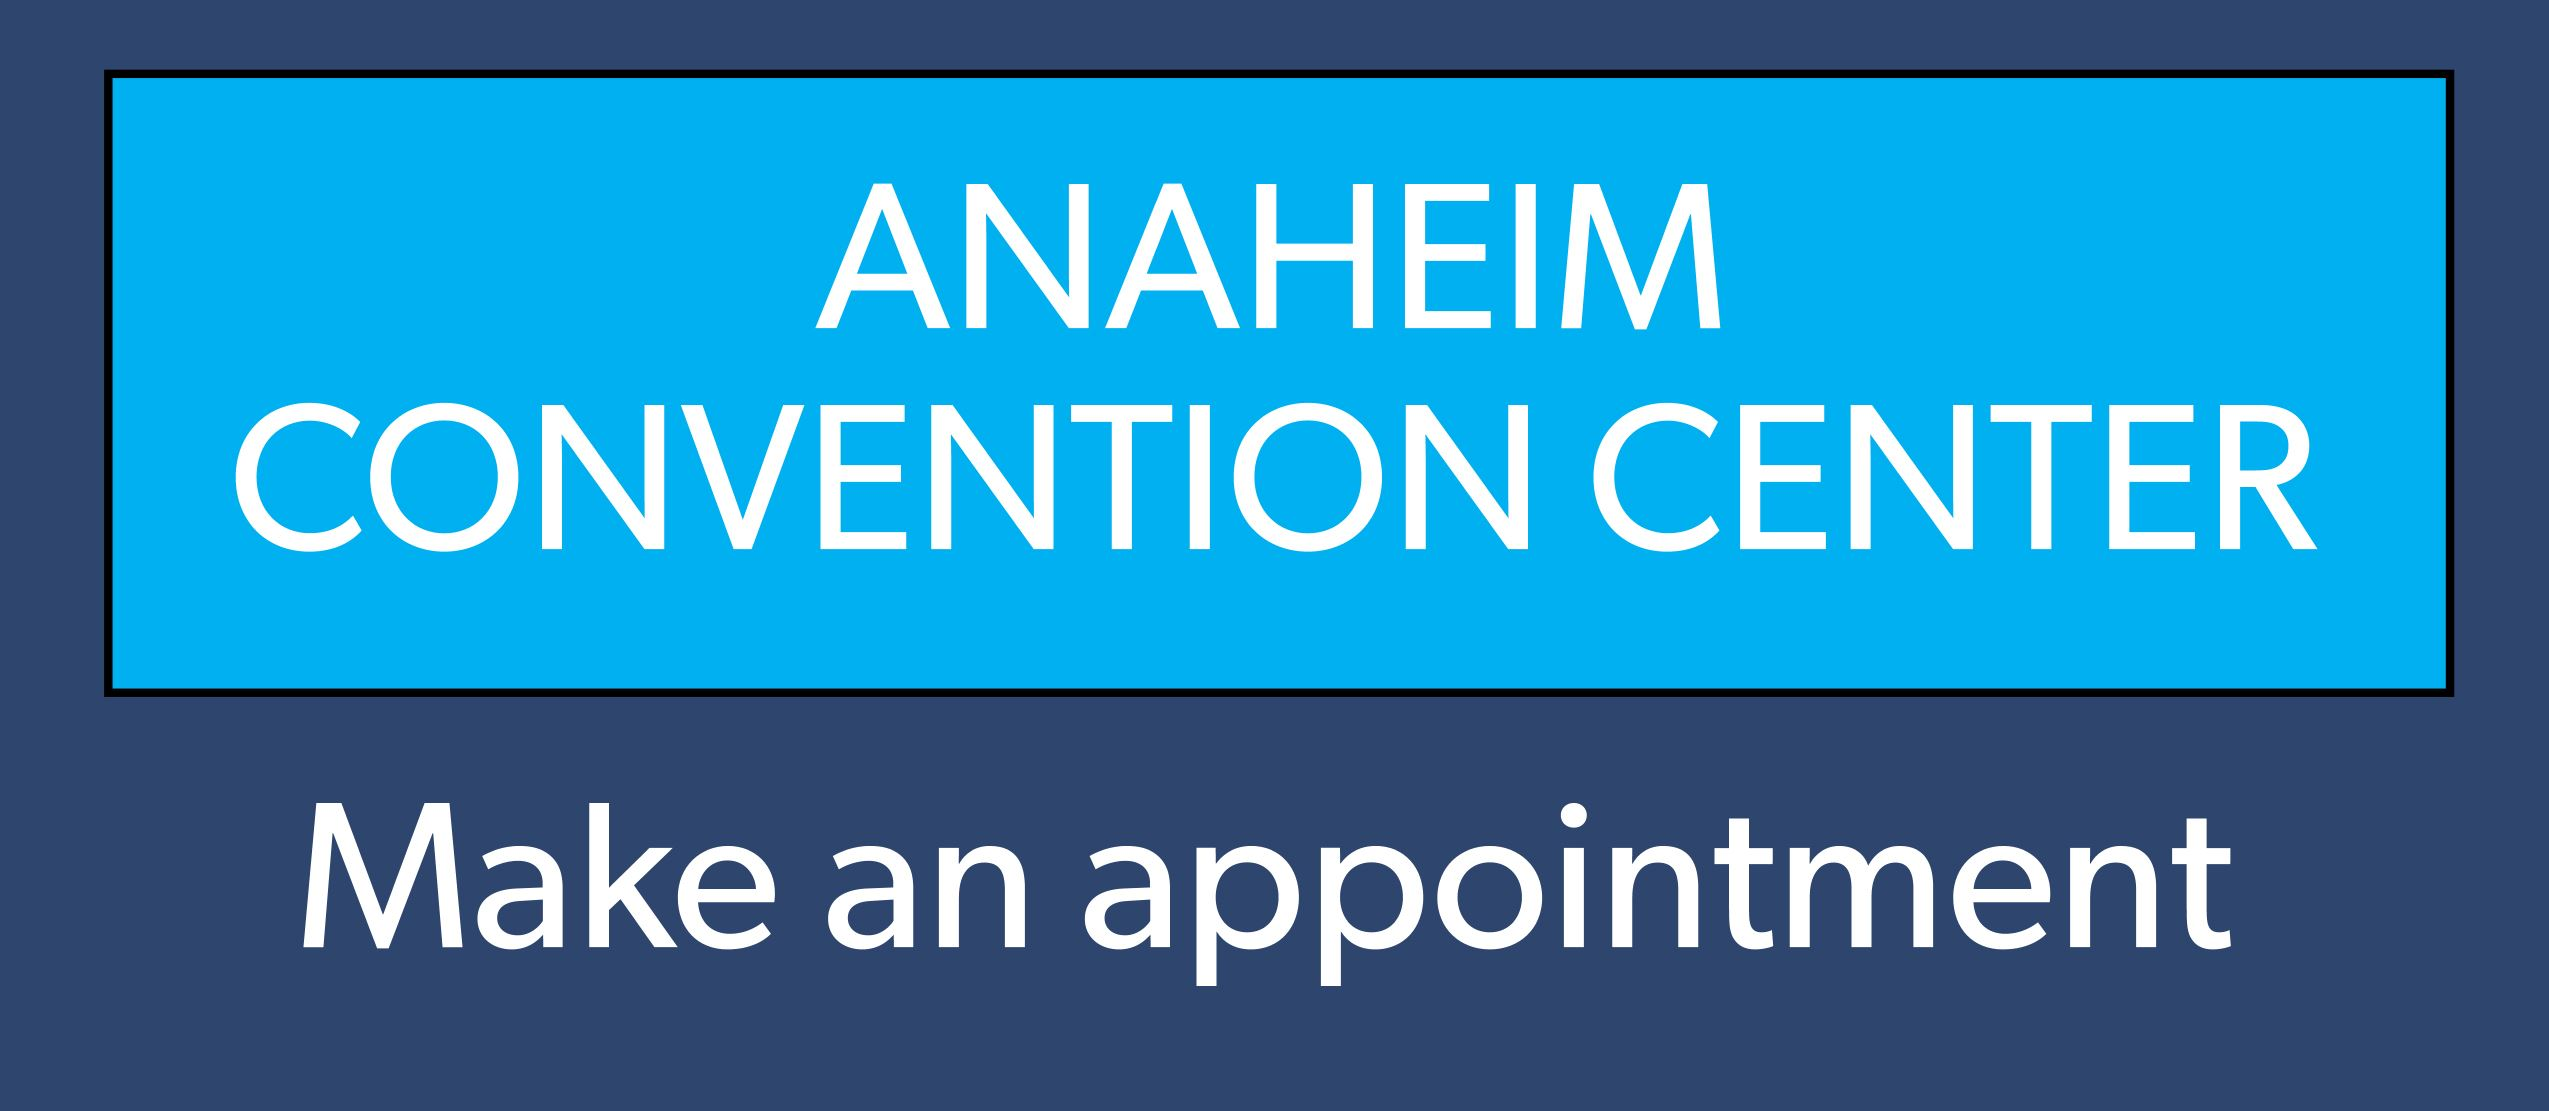 anaheim convention center appointments